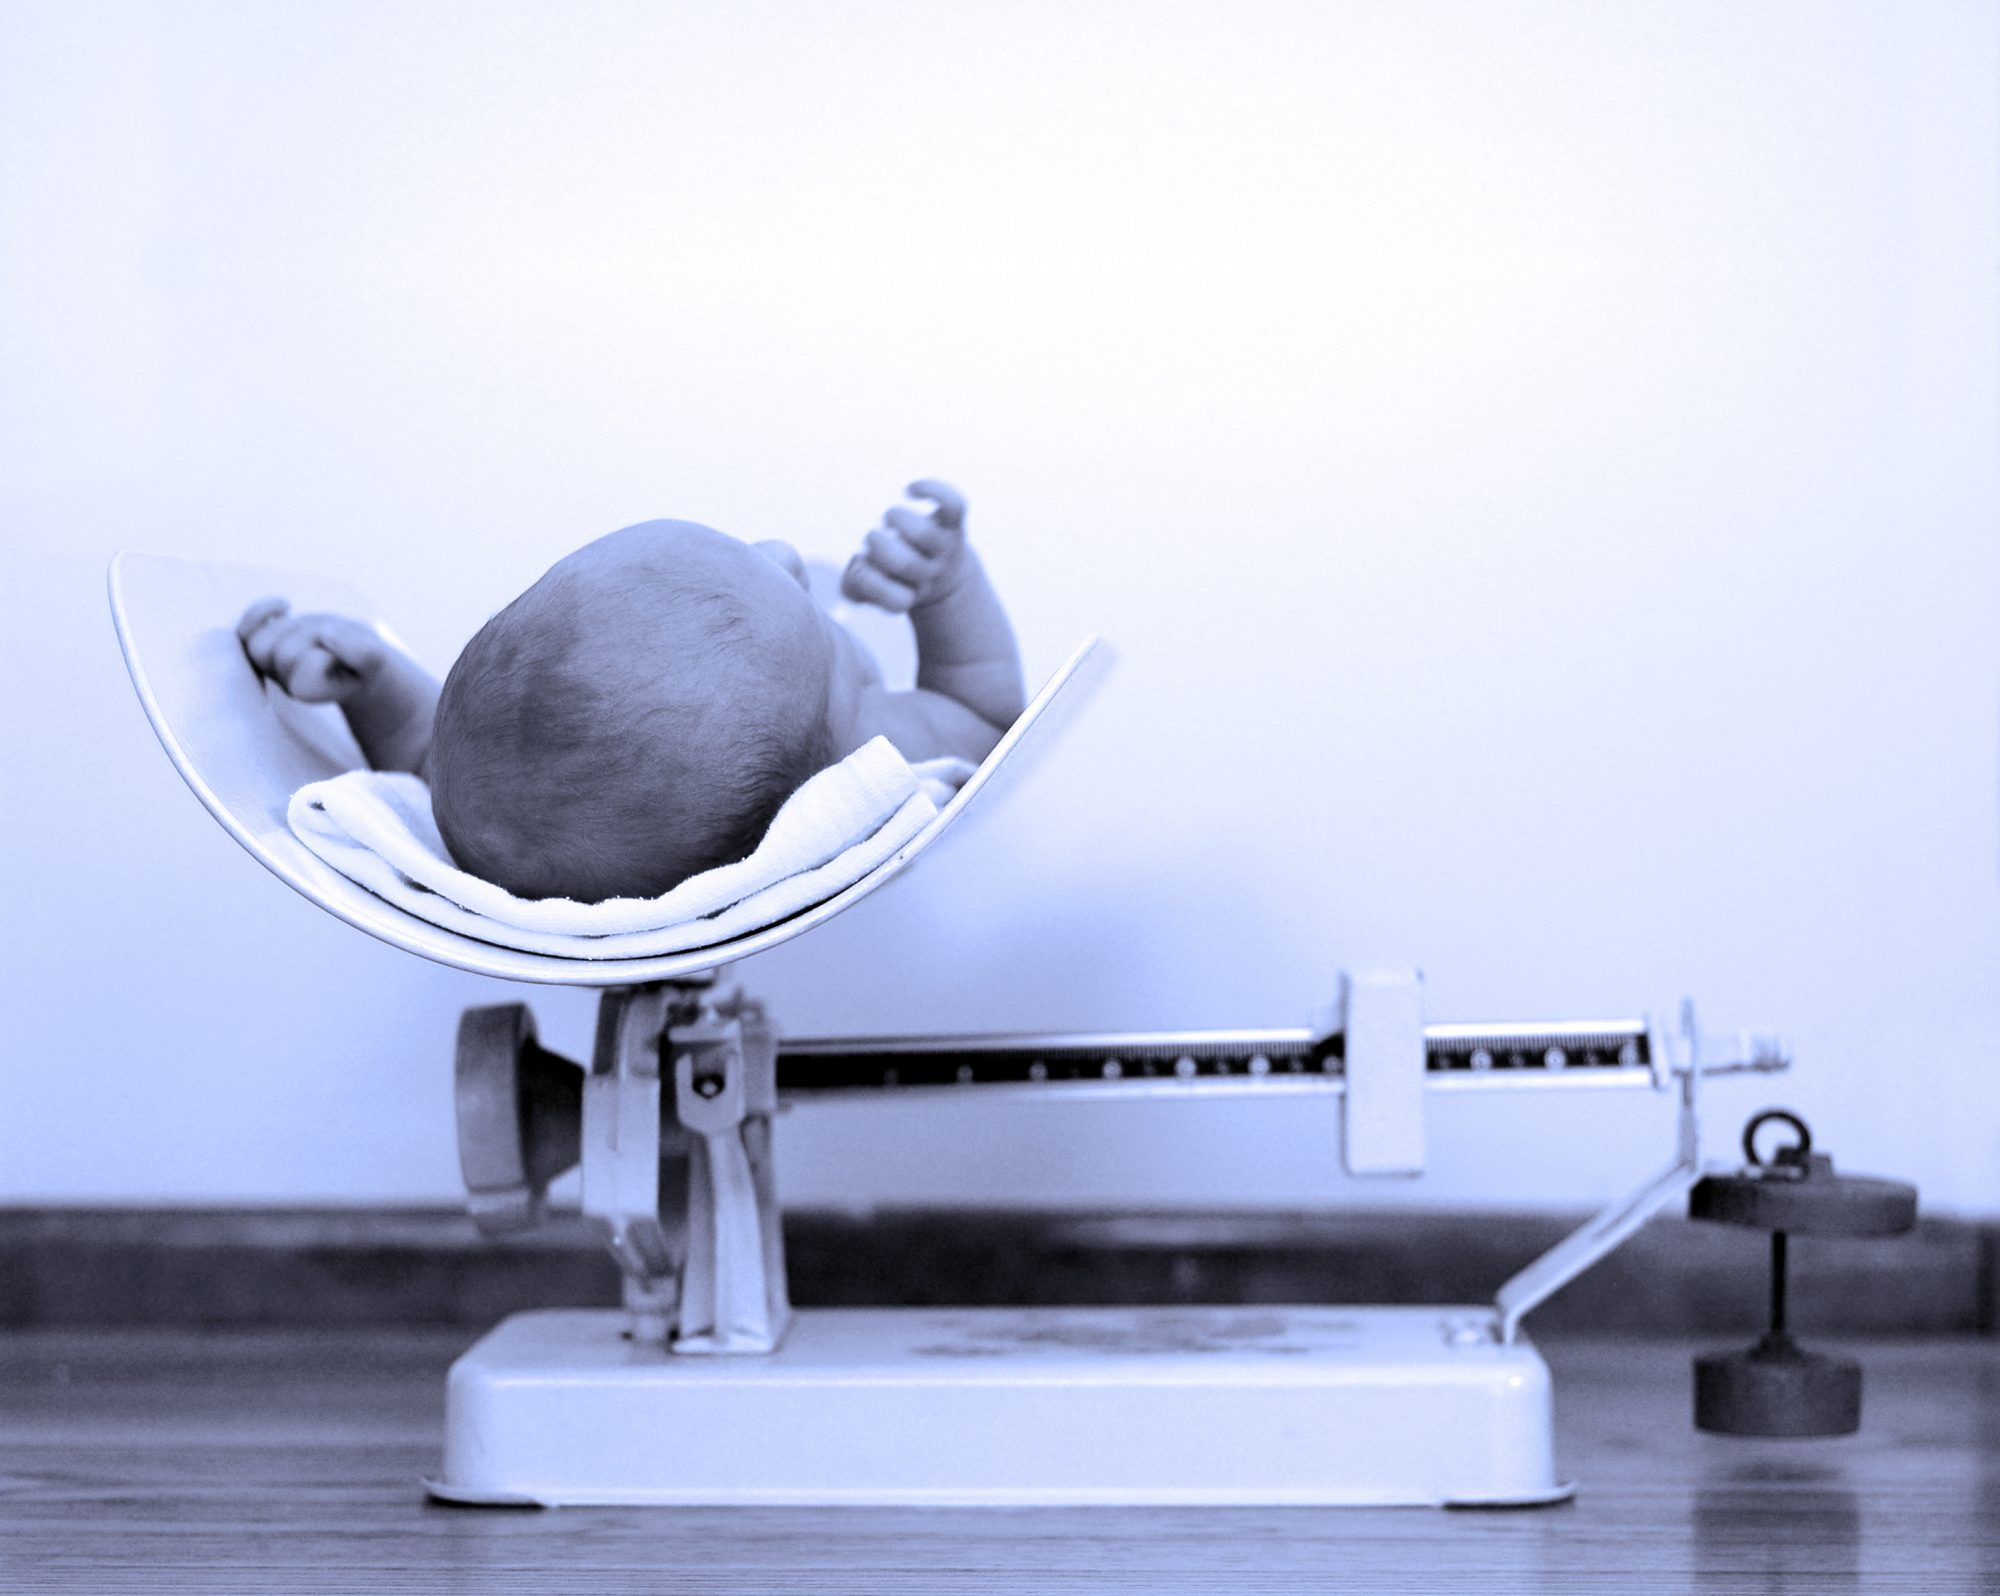 Texas Newborn Smashes Hospital Weight Record at Nearly 15 Lbs